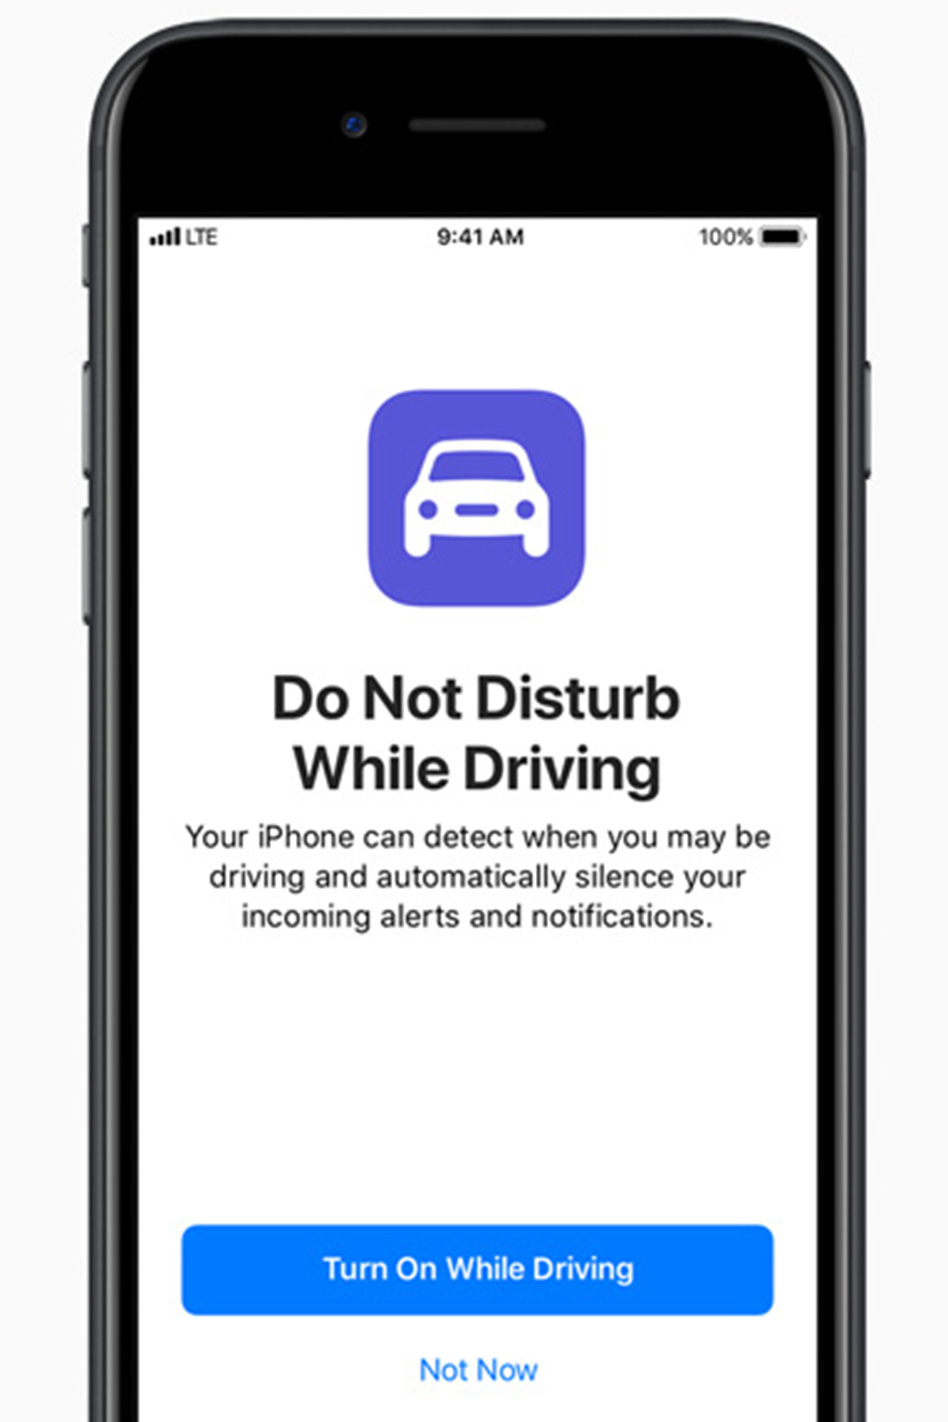 Apple adds distracted driver software to the iPhone